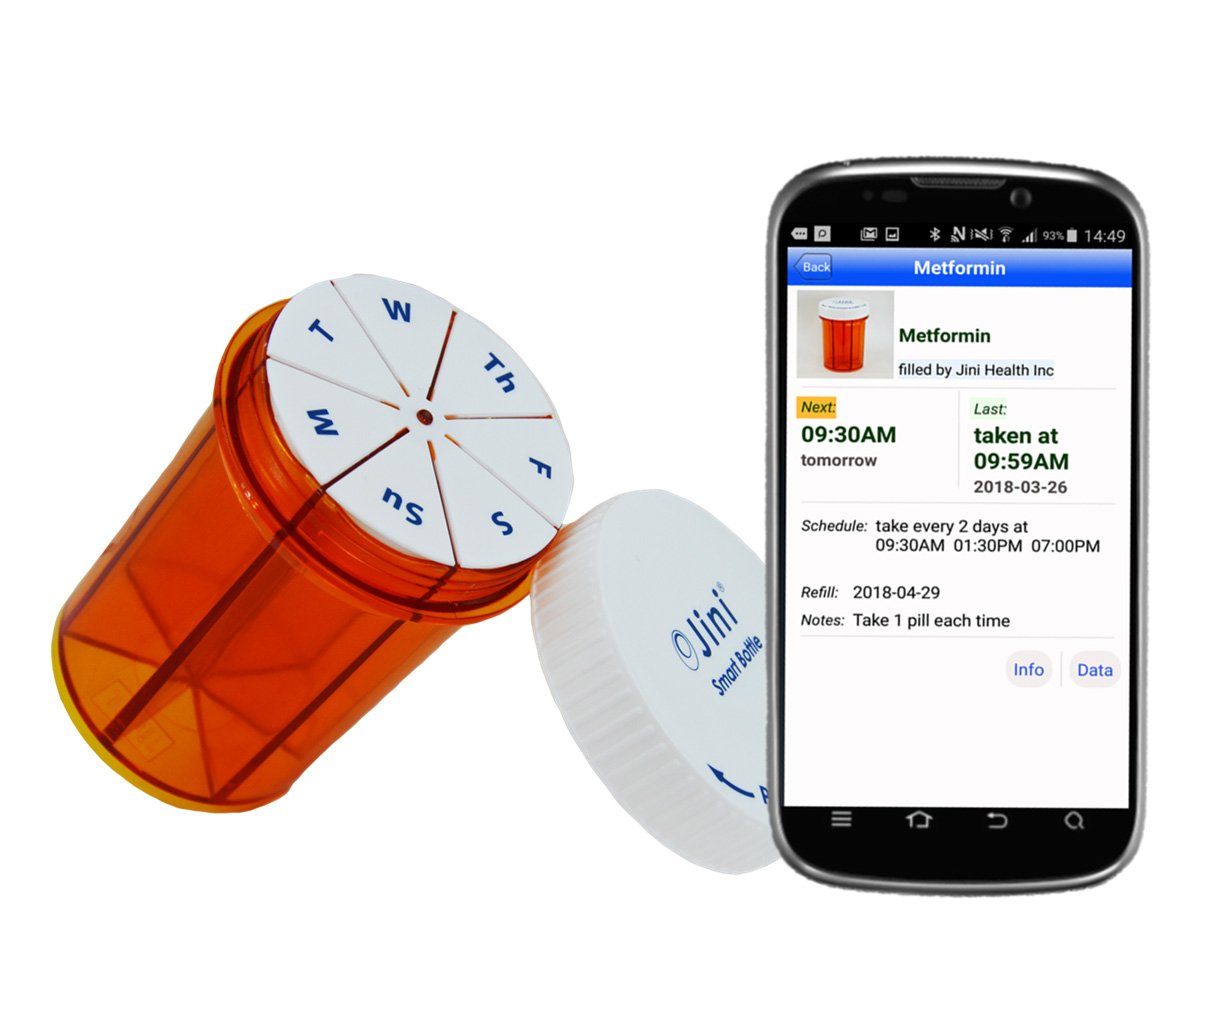 Jini Smart Weekly Pill Bottle Organizer with EZ-Minder - The Easiest Way to Setup Pill Reminders